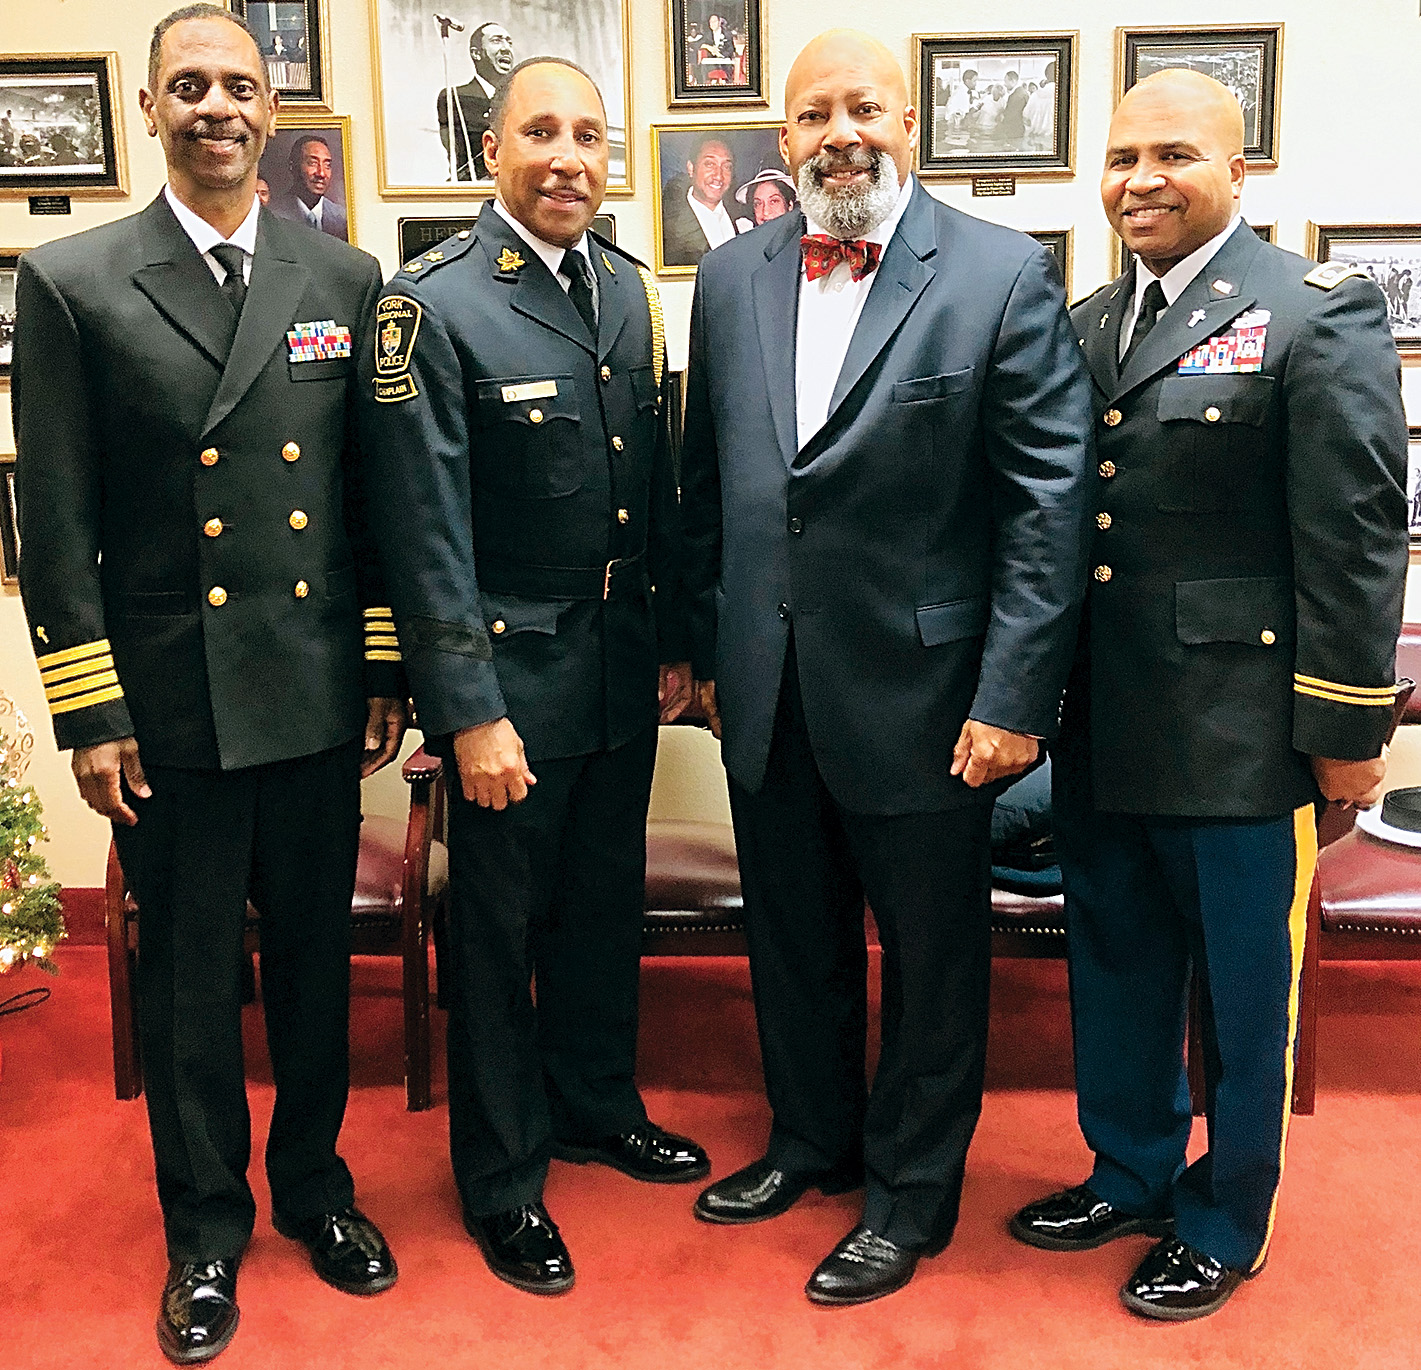 Dr. Edwards & Chaplains